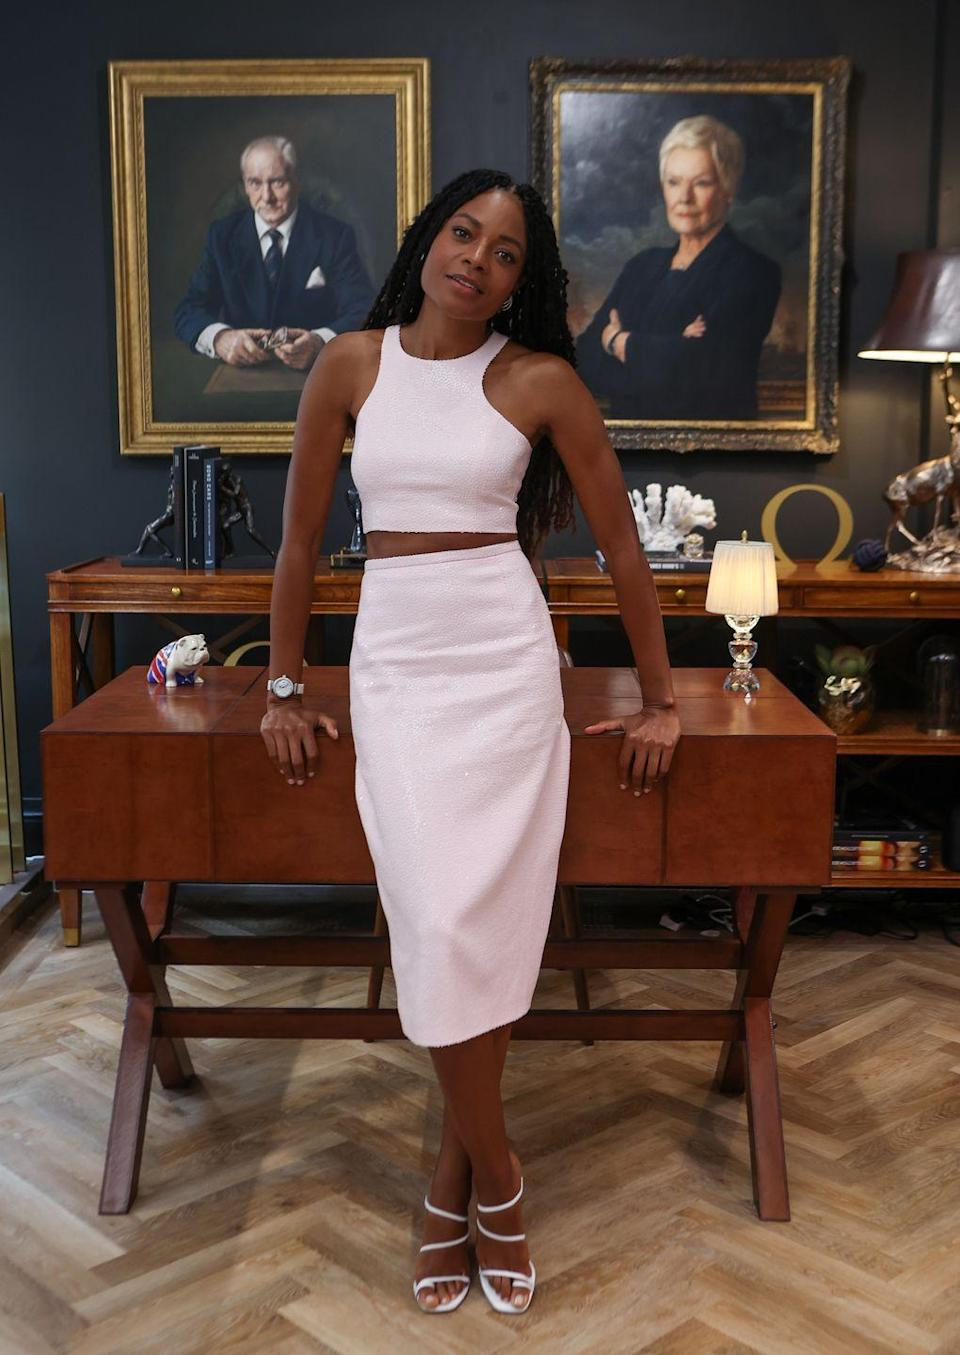 <p><strong>28 September</strong></p><p>Ahead of the world premiere of No Time To Die, Naomie Harris visited Omega's Bond House in Burlington Arcade wearing a white Michael Kors two-piece with strappy sandals and an Omega watch. The actress later hosted a lunch with the luxury watch brand at Scott's in Mayfair.</p>